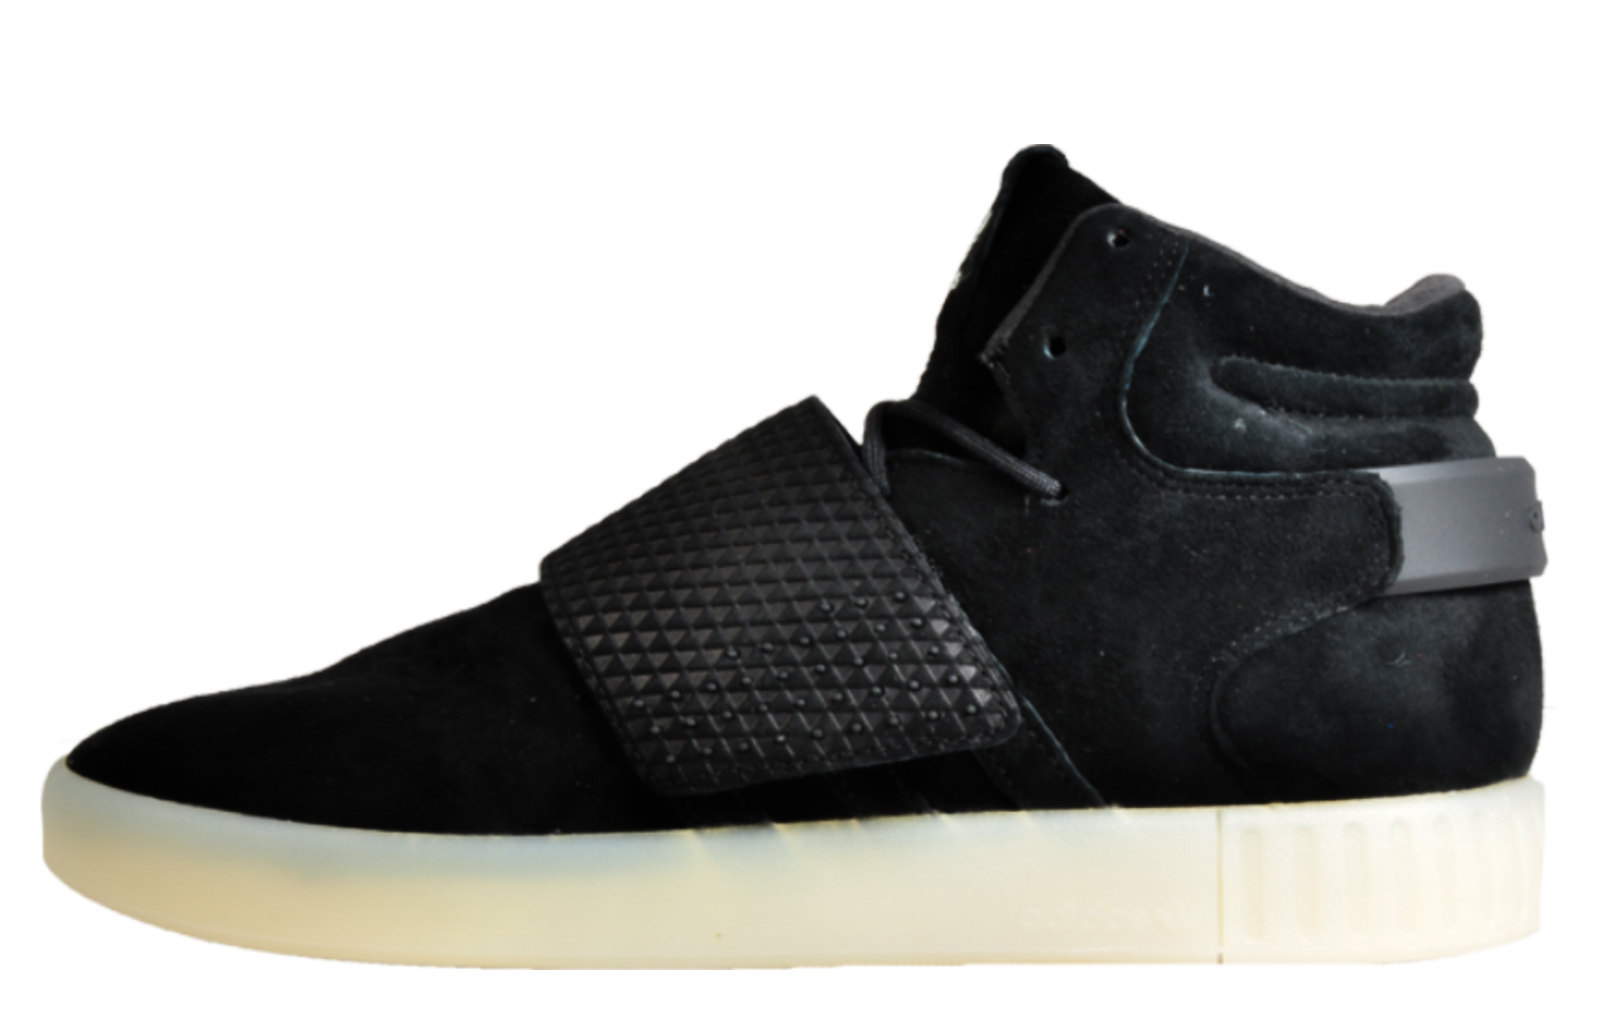 a56e0893438230 Adidas Originals Tubular Invader Strap Men s Suede Leather Mid Top Trainers